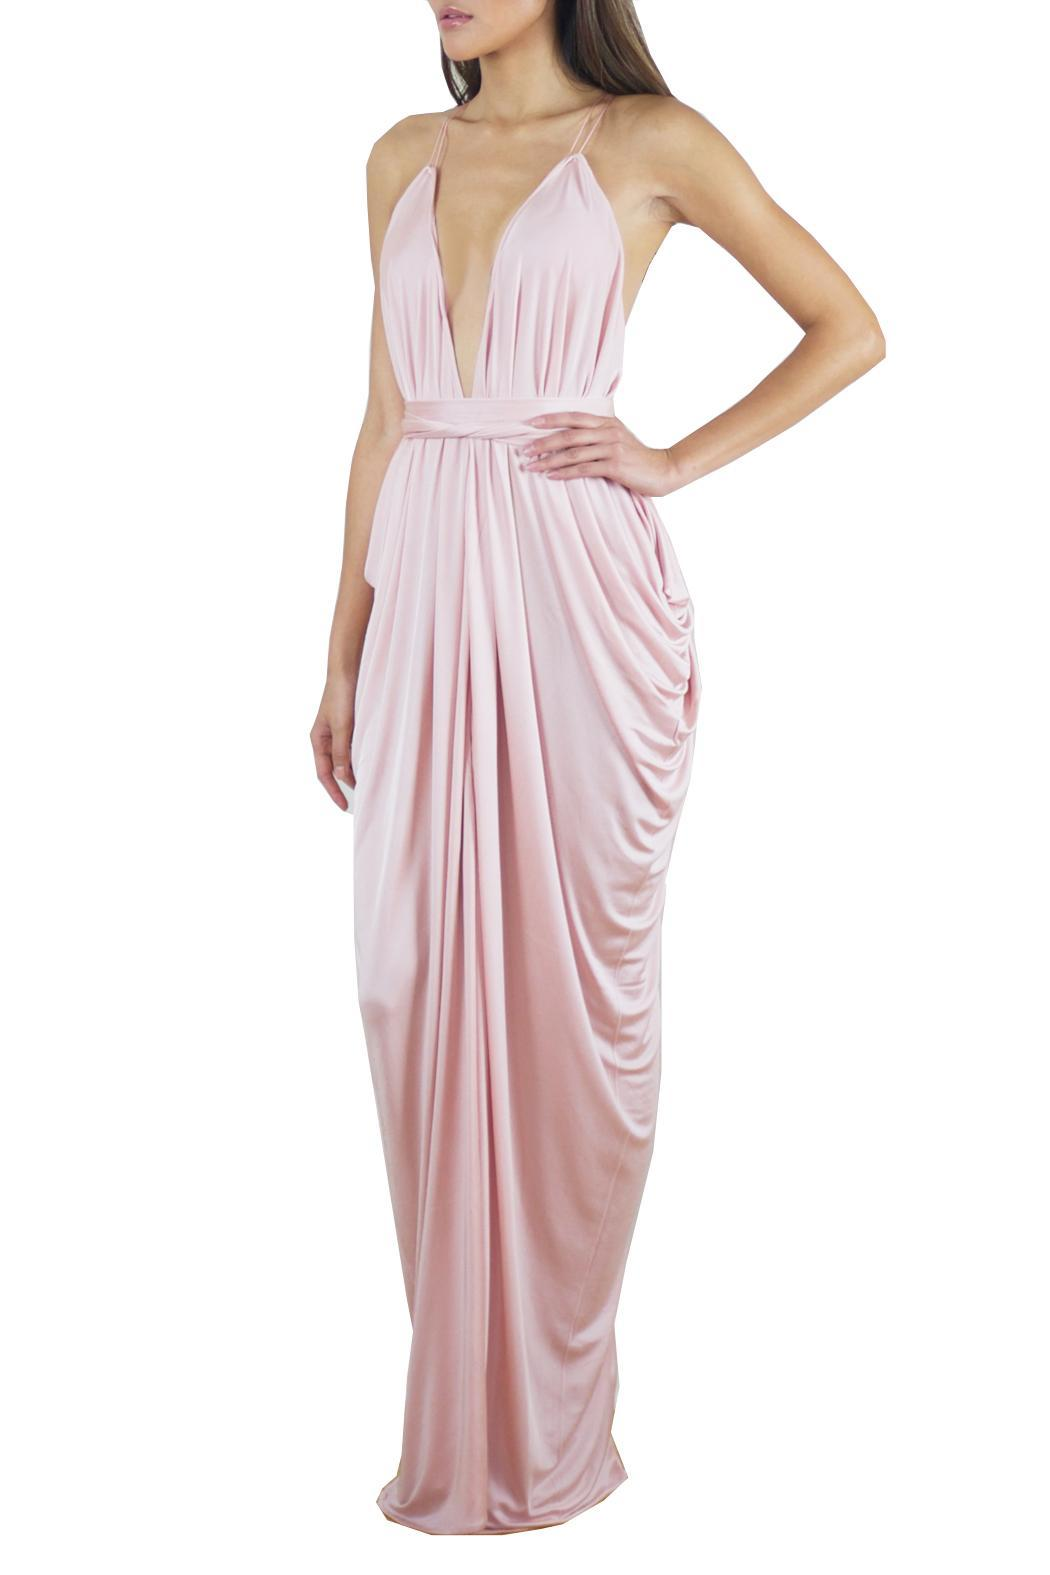 Lois London Blush Bridesmaids Dress - Front Full Image